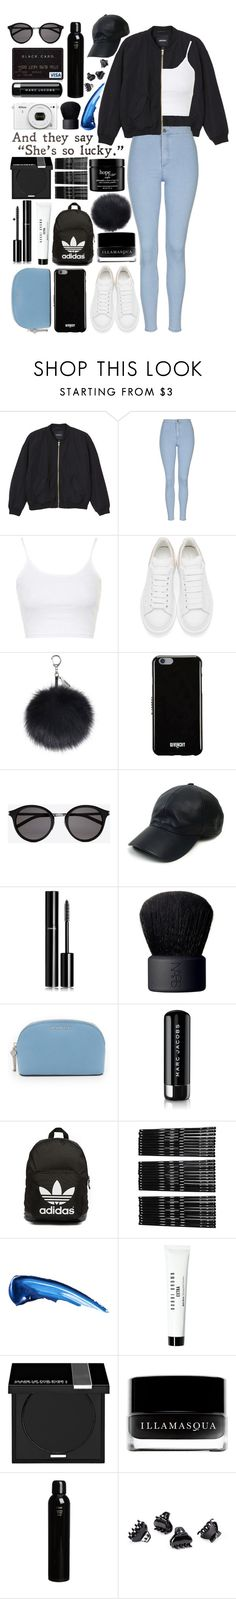 """#166 - Don't Mess With My Heart"" by lolohohokoko ❤ liked on Polyvore featuring Monki, Topshop, Alexander McQueen, Givenchy, Yves Saint Laurent, Vianel, Chanel, NARS Cosmetics, MICHAEL Michael Kors and Marc Jacobs"